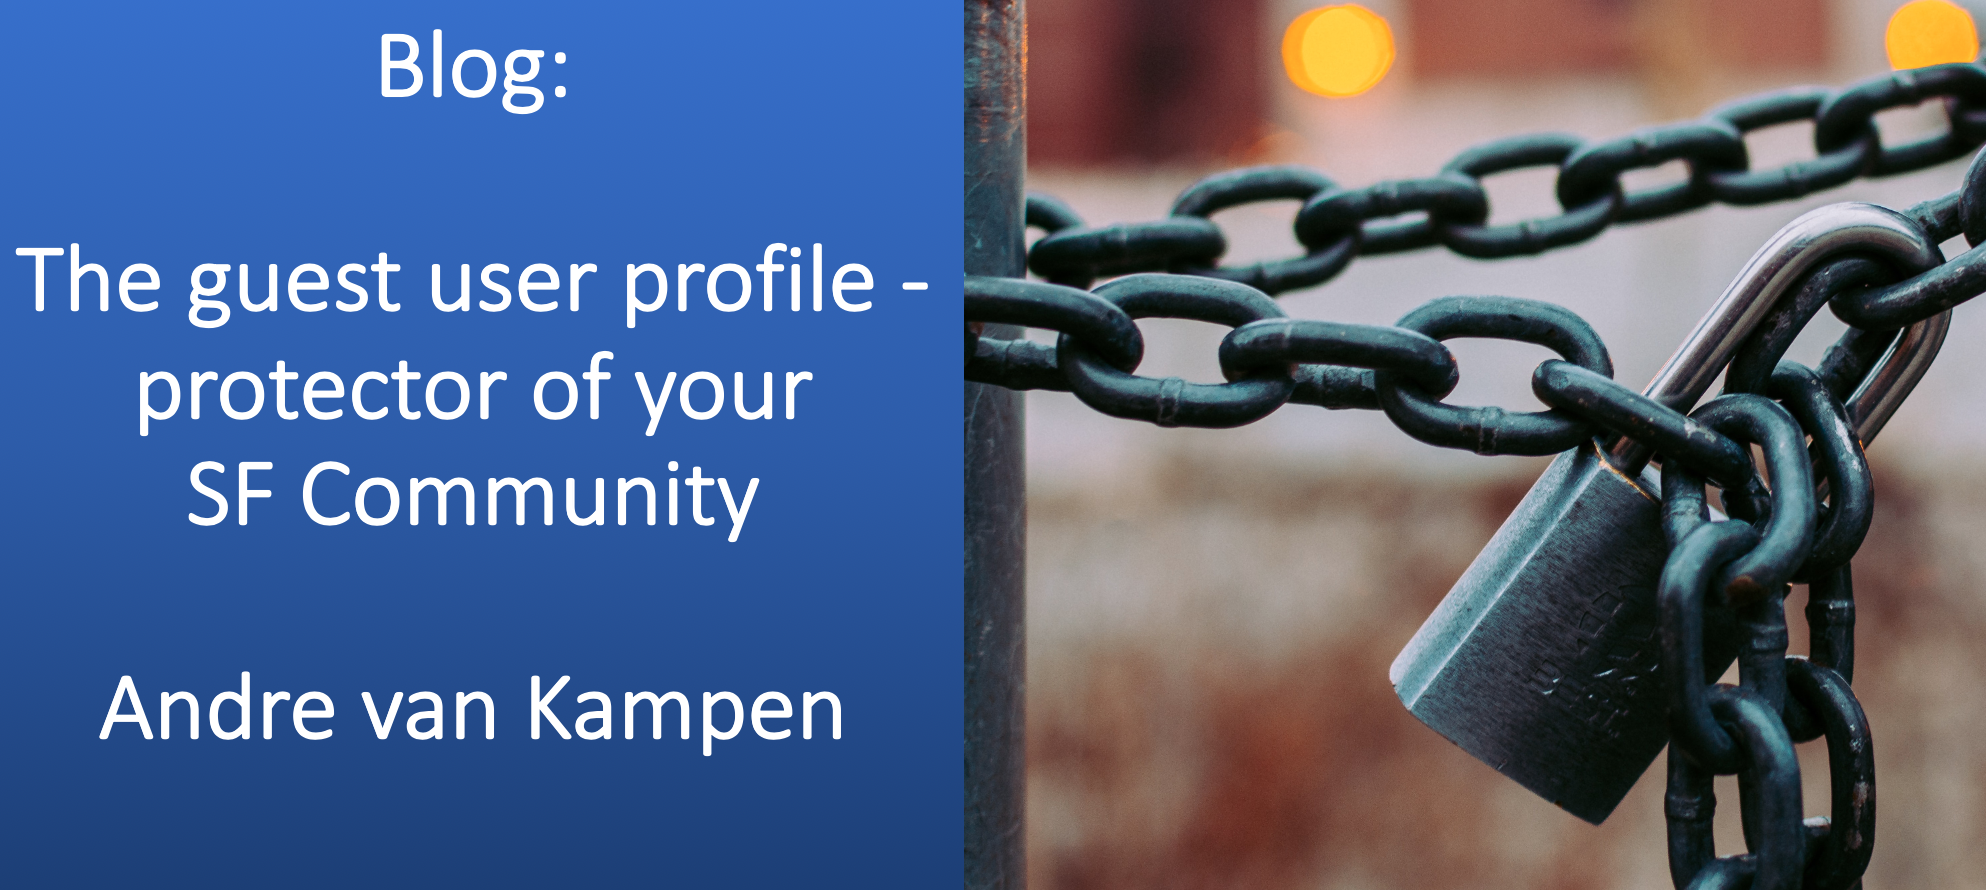 The guest user profile: protector of your SF Community